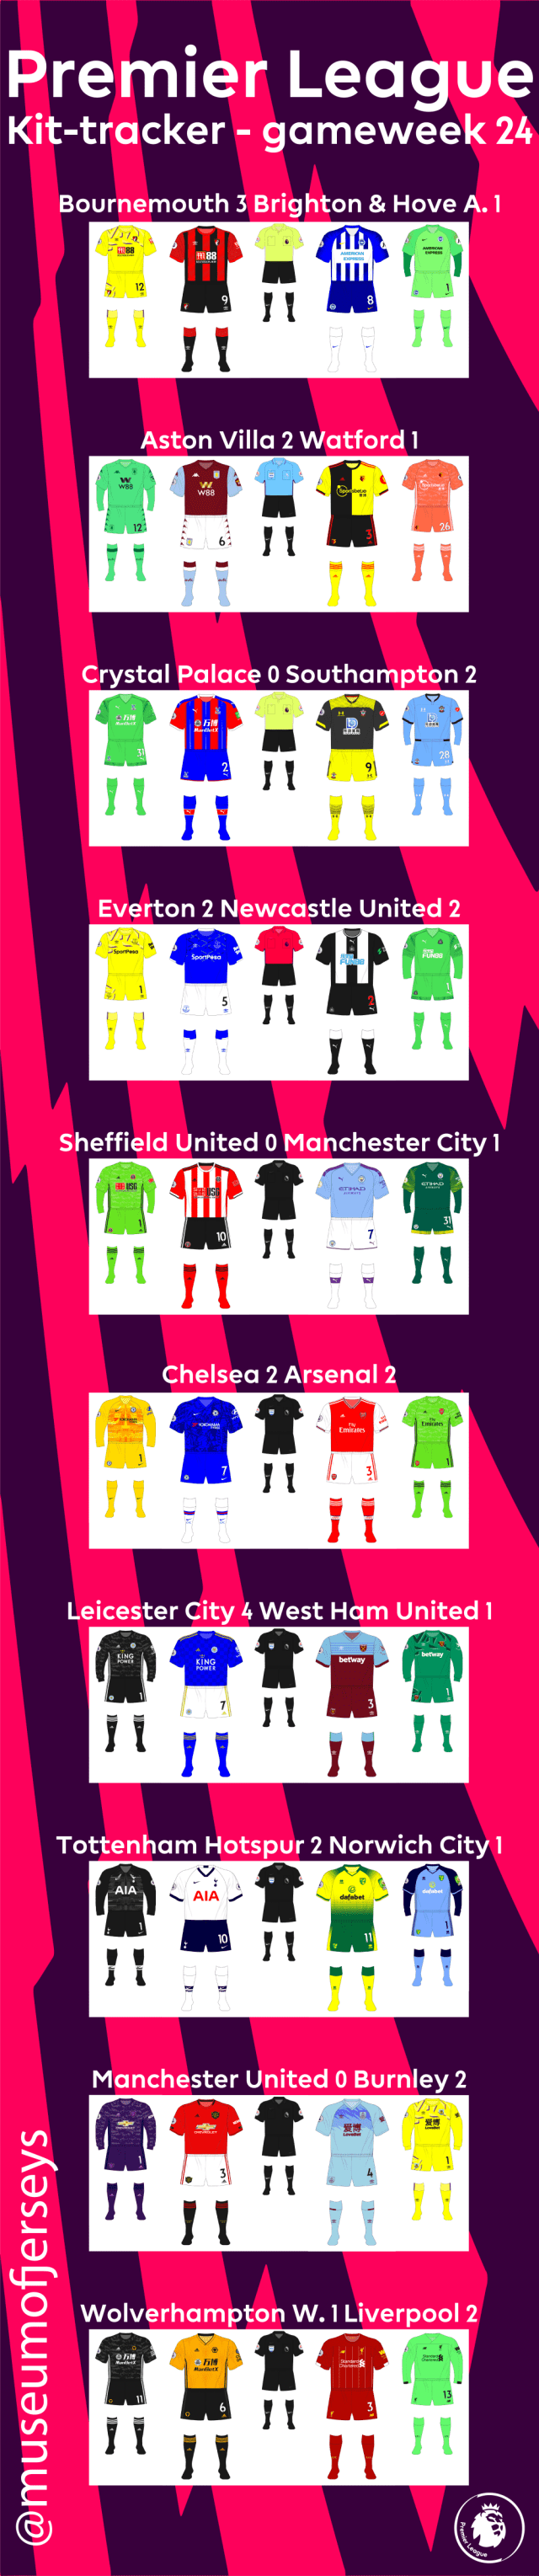 2019-2020-Premier-League-Kit-Tracker-Gameweek-24-01